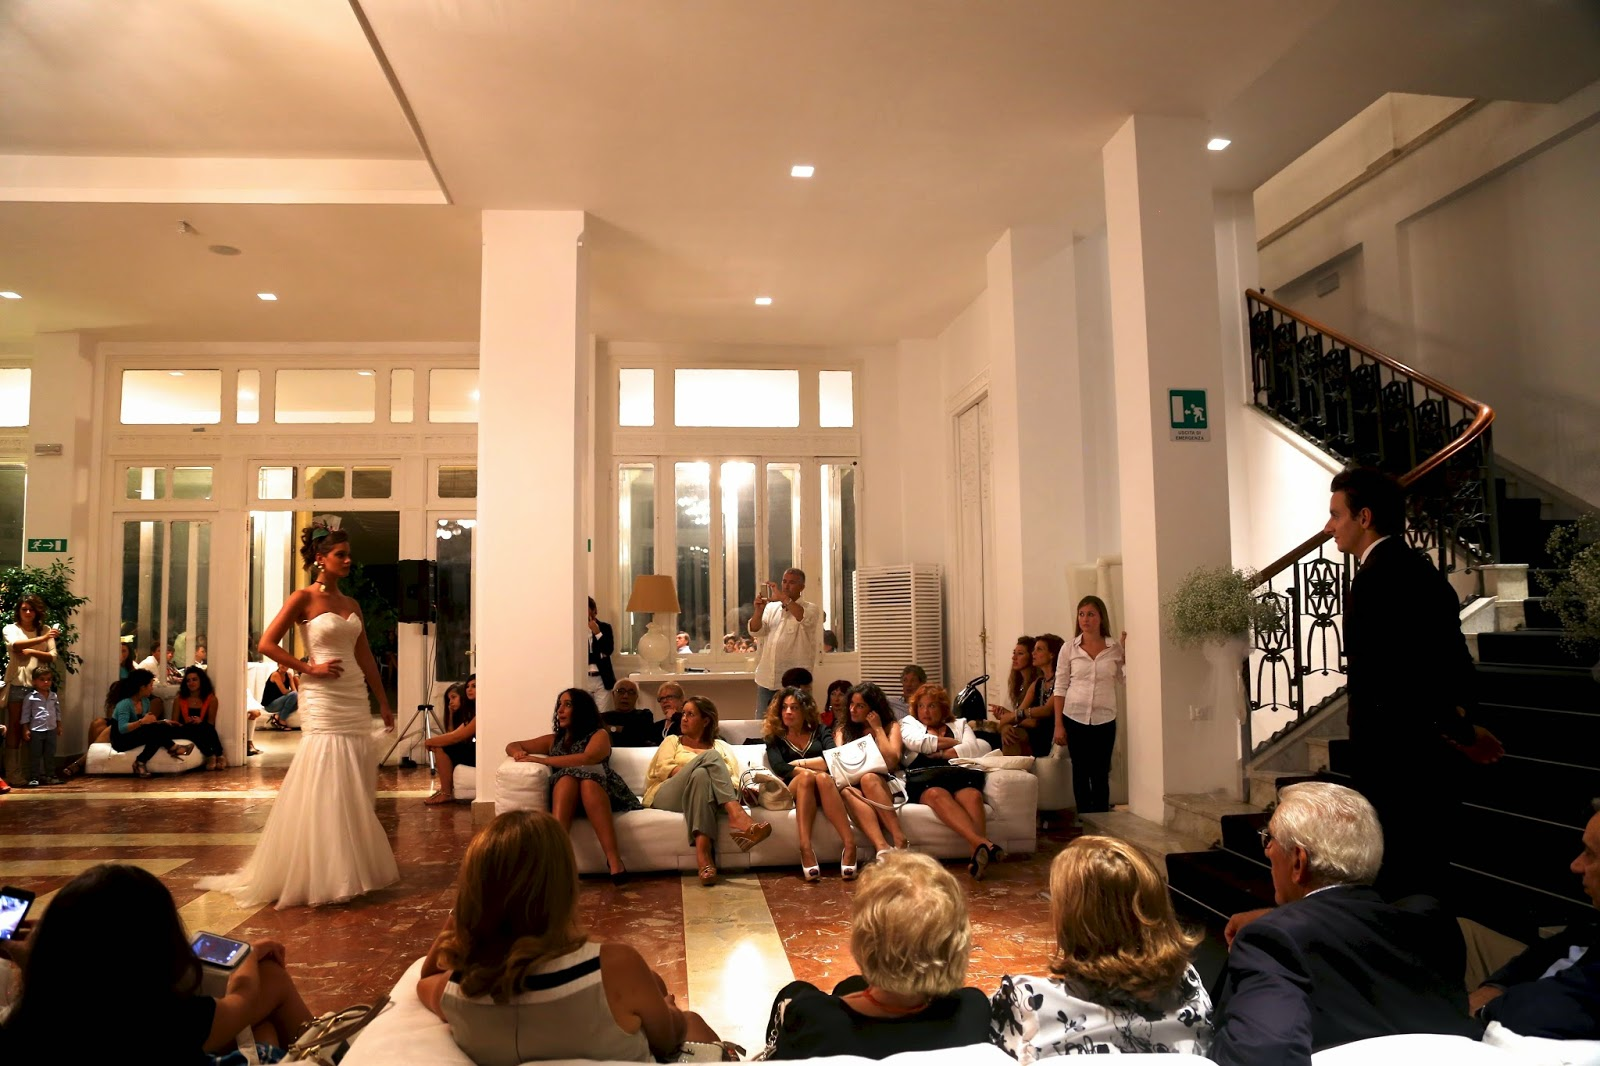 Wedding dress fashion show, Mondello, Sicily